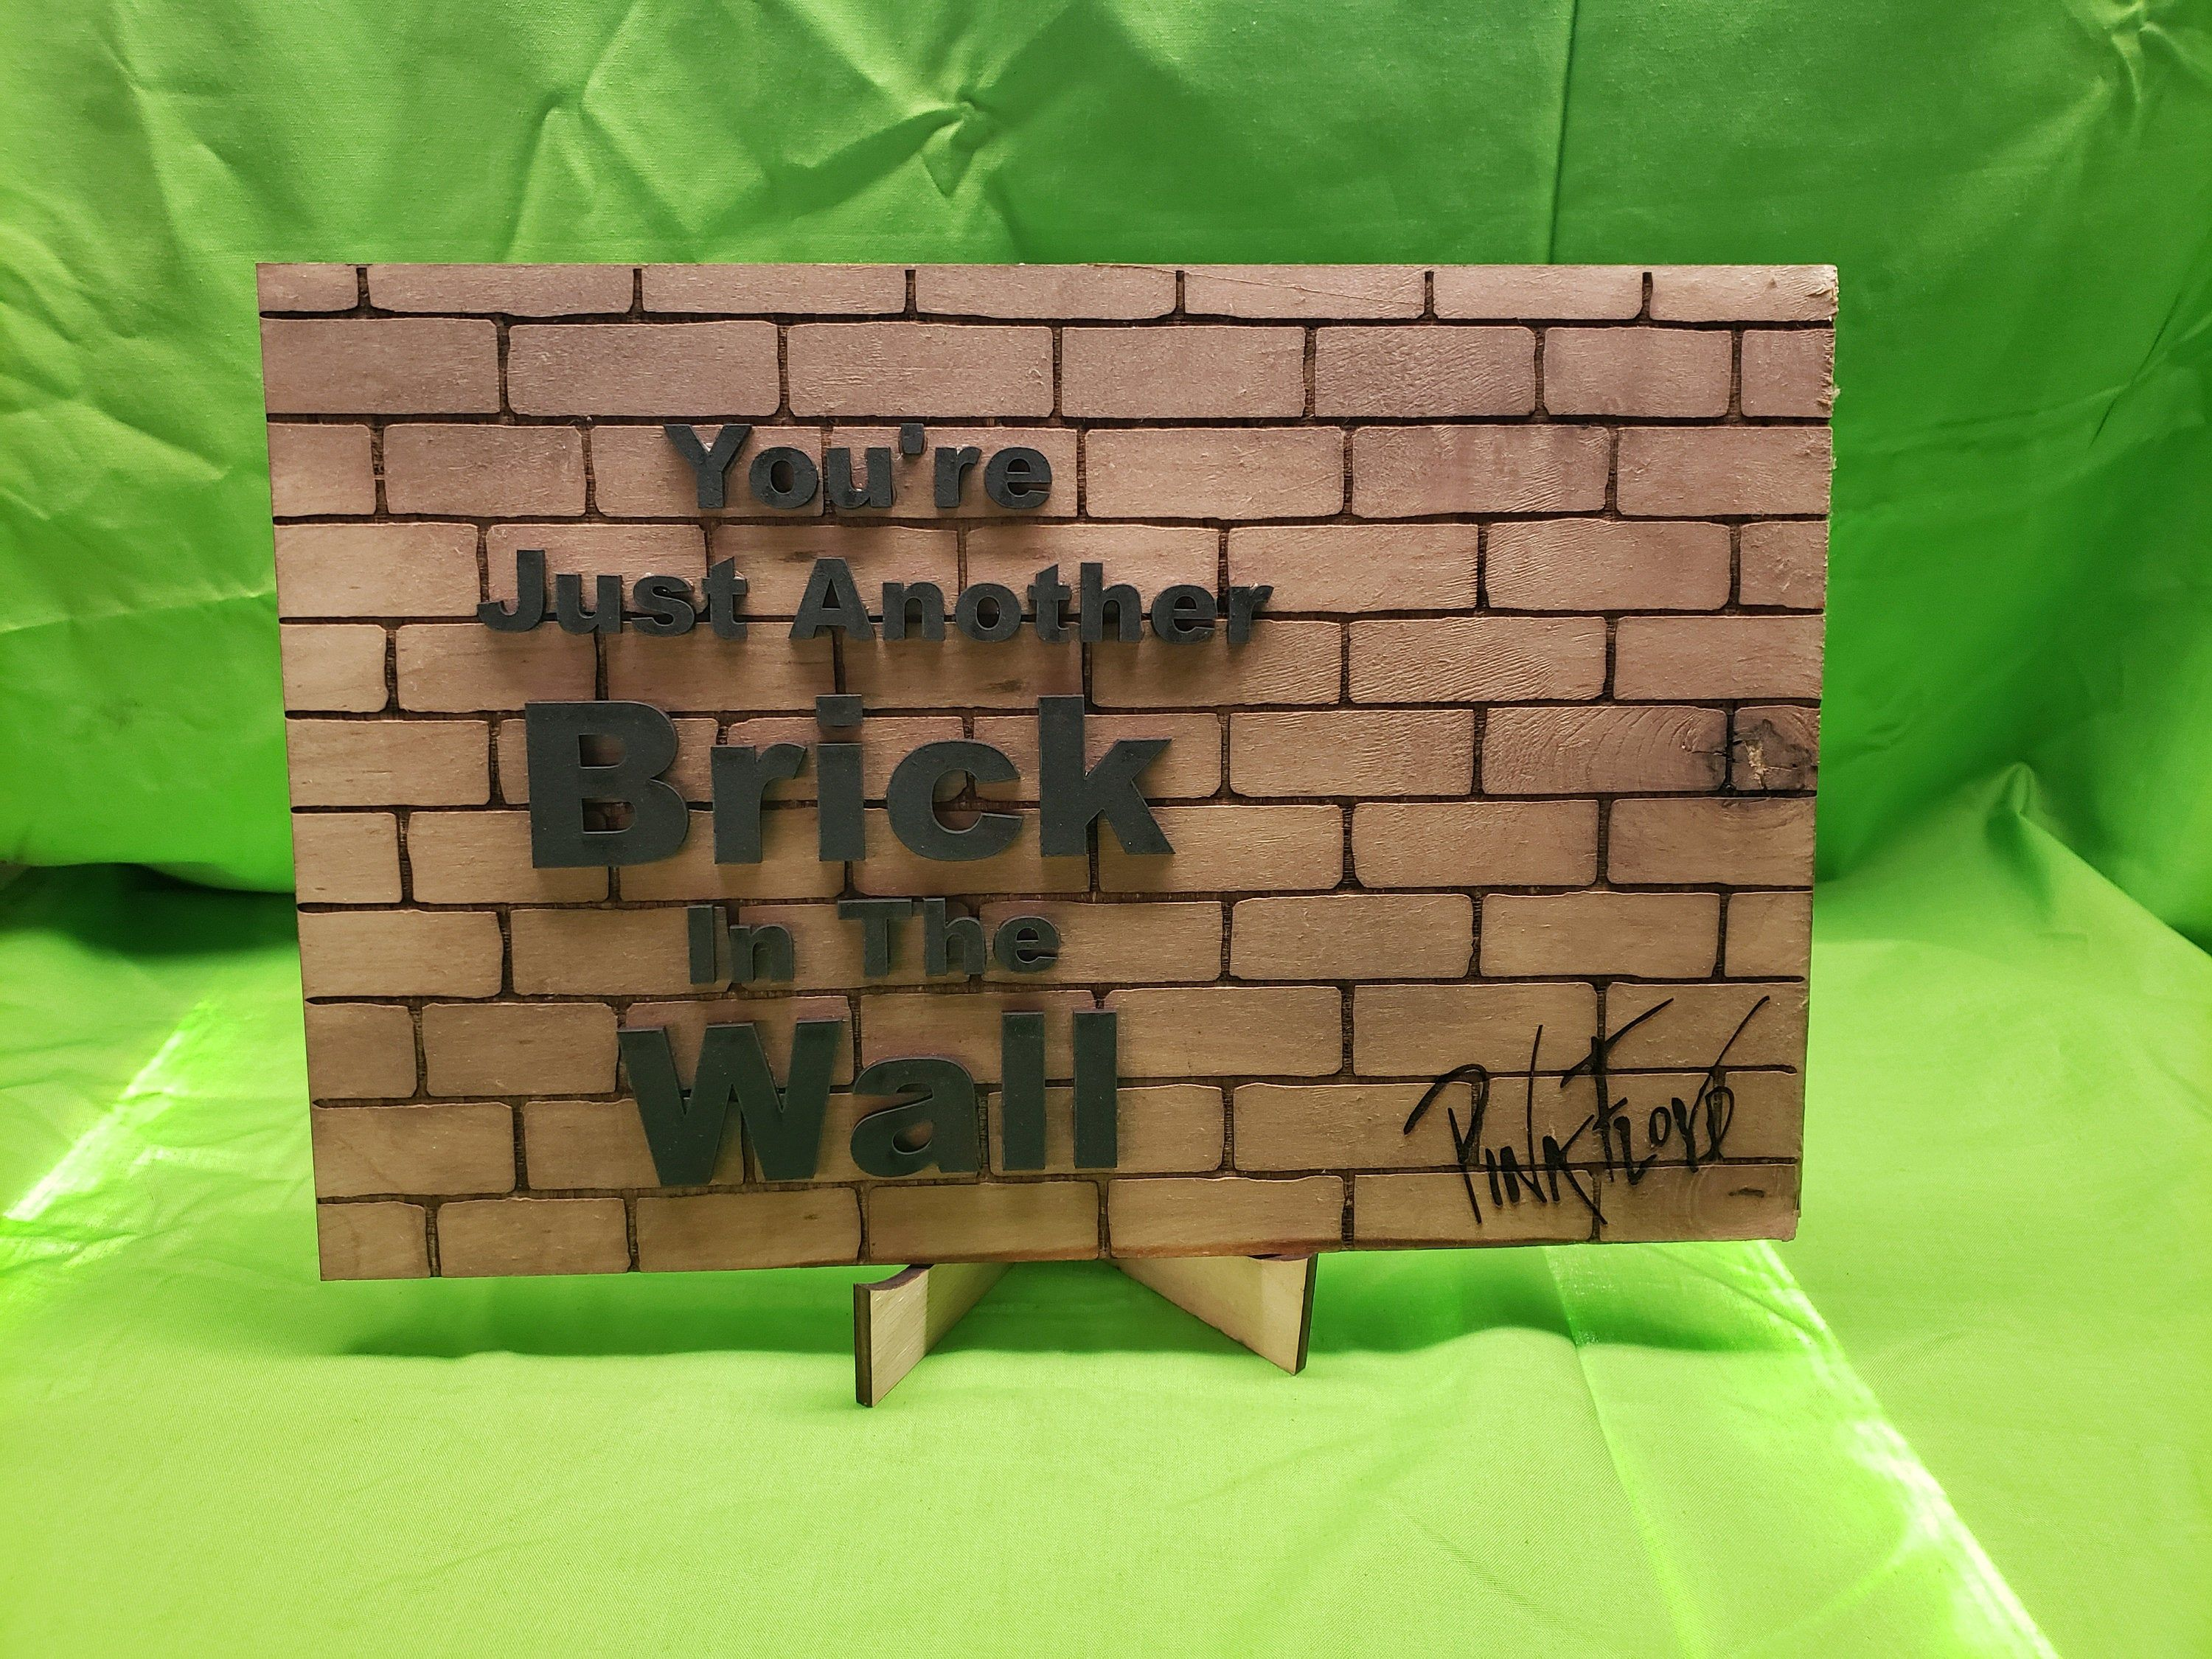 Pink Floyd Your E Just Another Brick On The Wall Wooden Sign